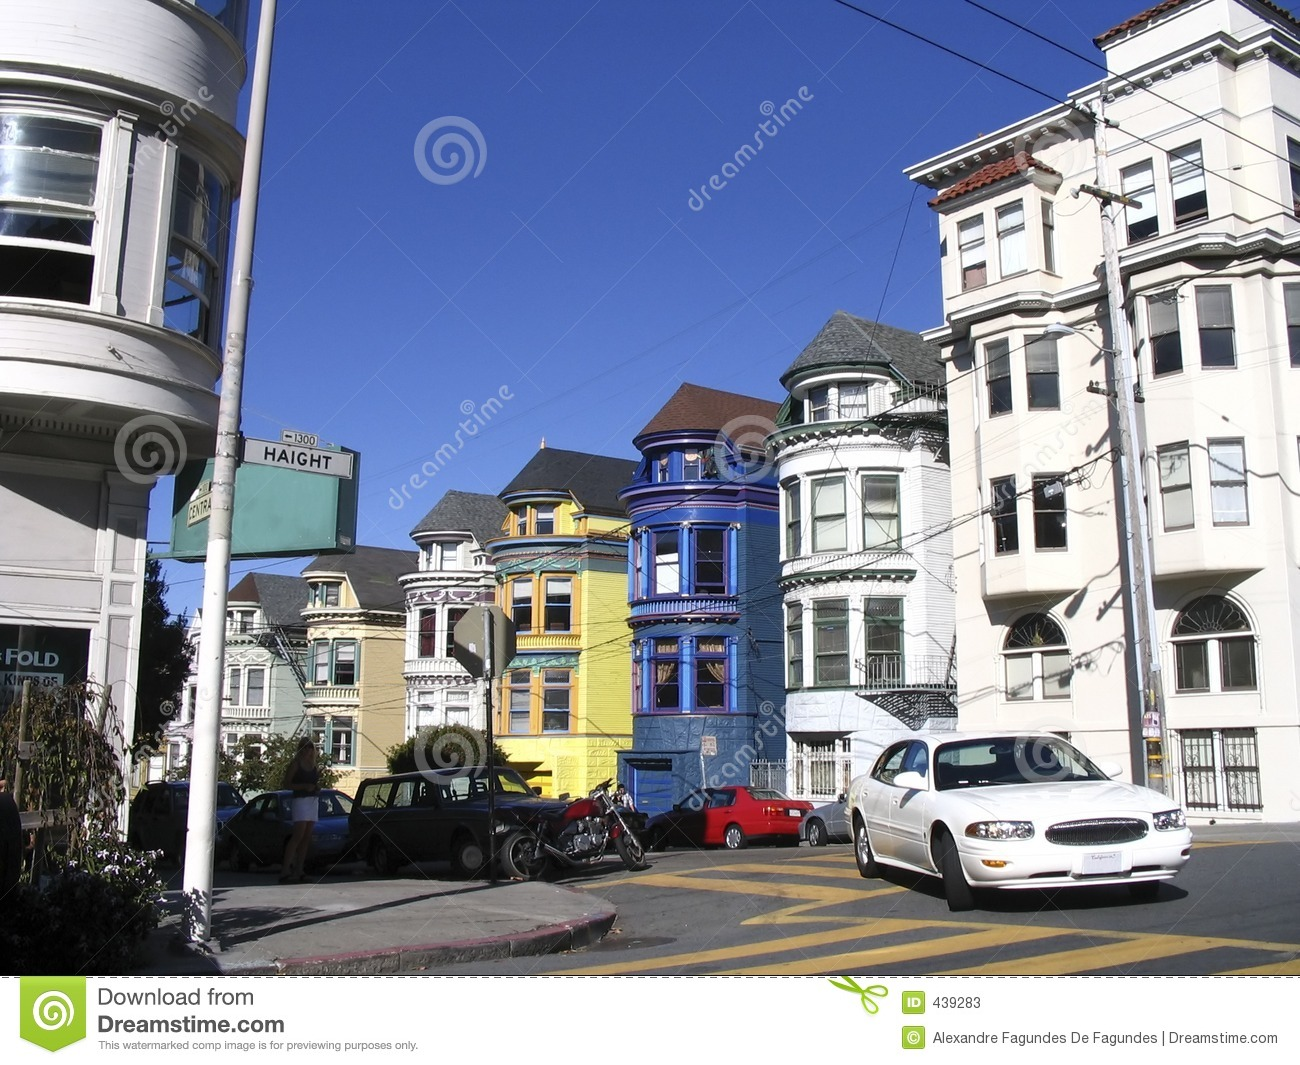 Top 5 San Francisco likewise LocationPhotoDirectLink G60713 D103856 I97734018 Haight Ashbury San Francisco California likewise 81768549454362480 as well Groupbustourvan in addition Find Out How You Can Book A Hotel Stay And Win A Getaway With Trip Advisor. on victorian architecture haight ashbury